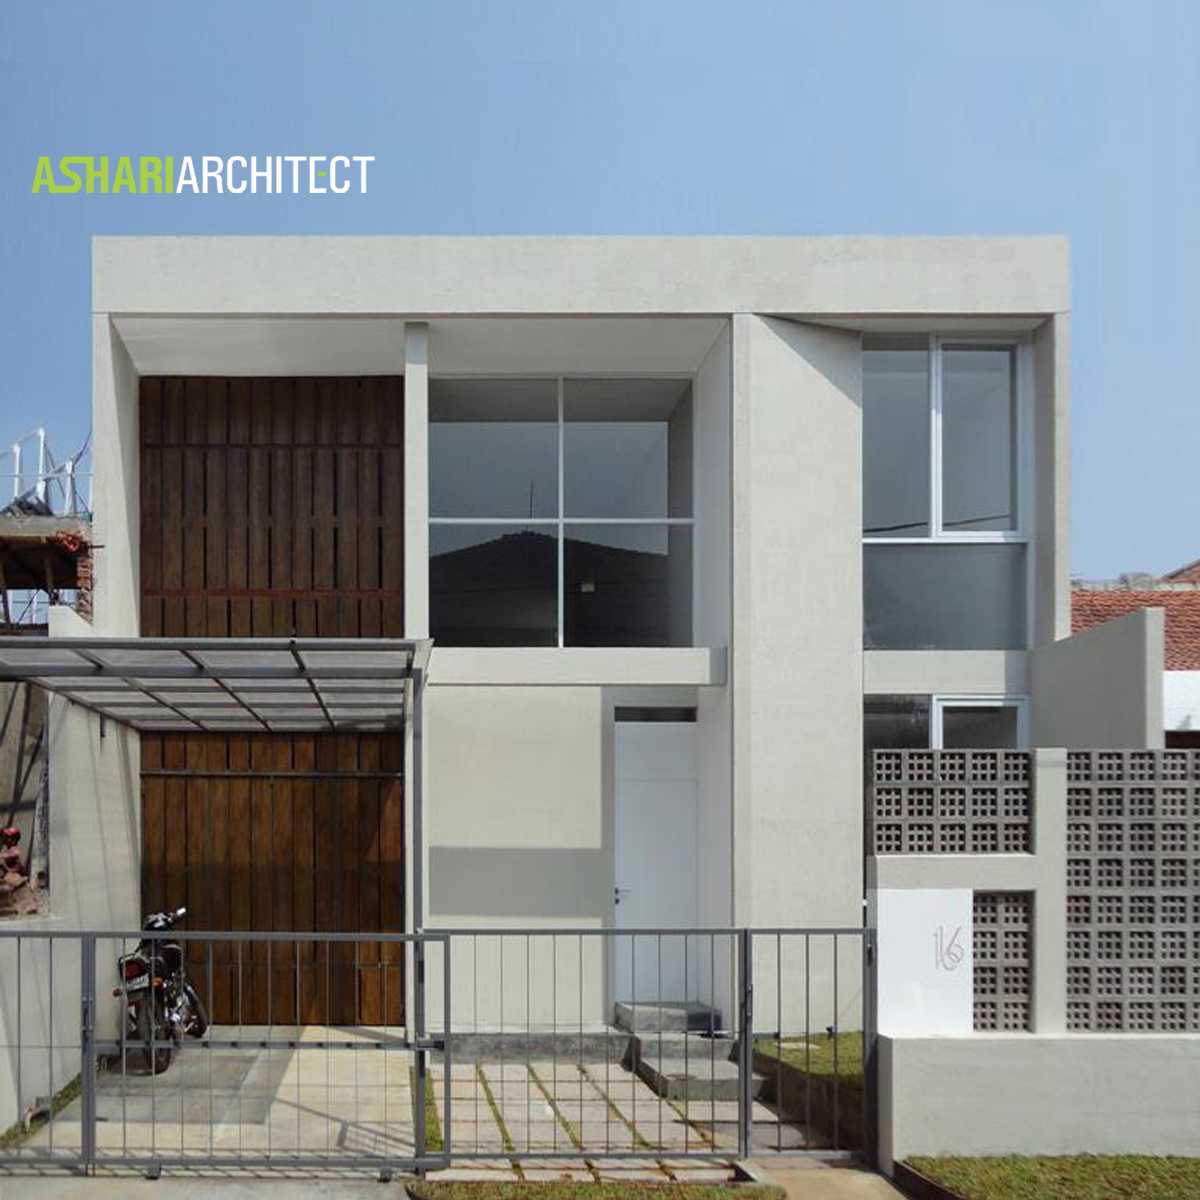 Ashari Architects Salendro House Bandung, Indonesia Bandung, Indonesia Day-Front-View  11877